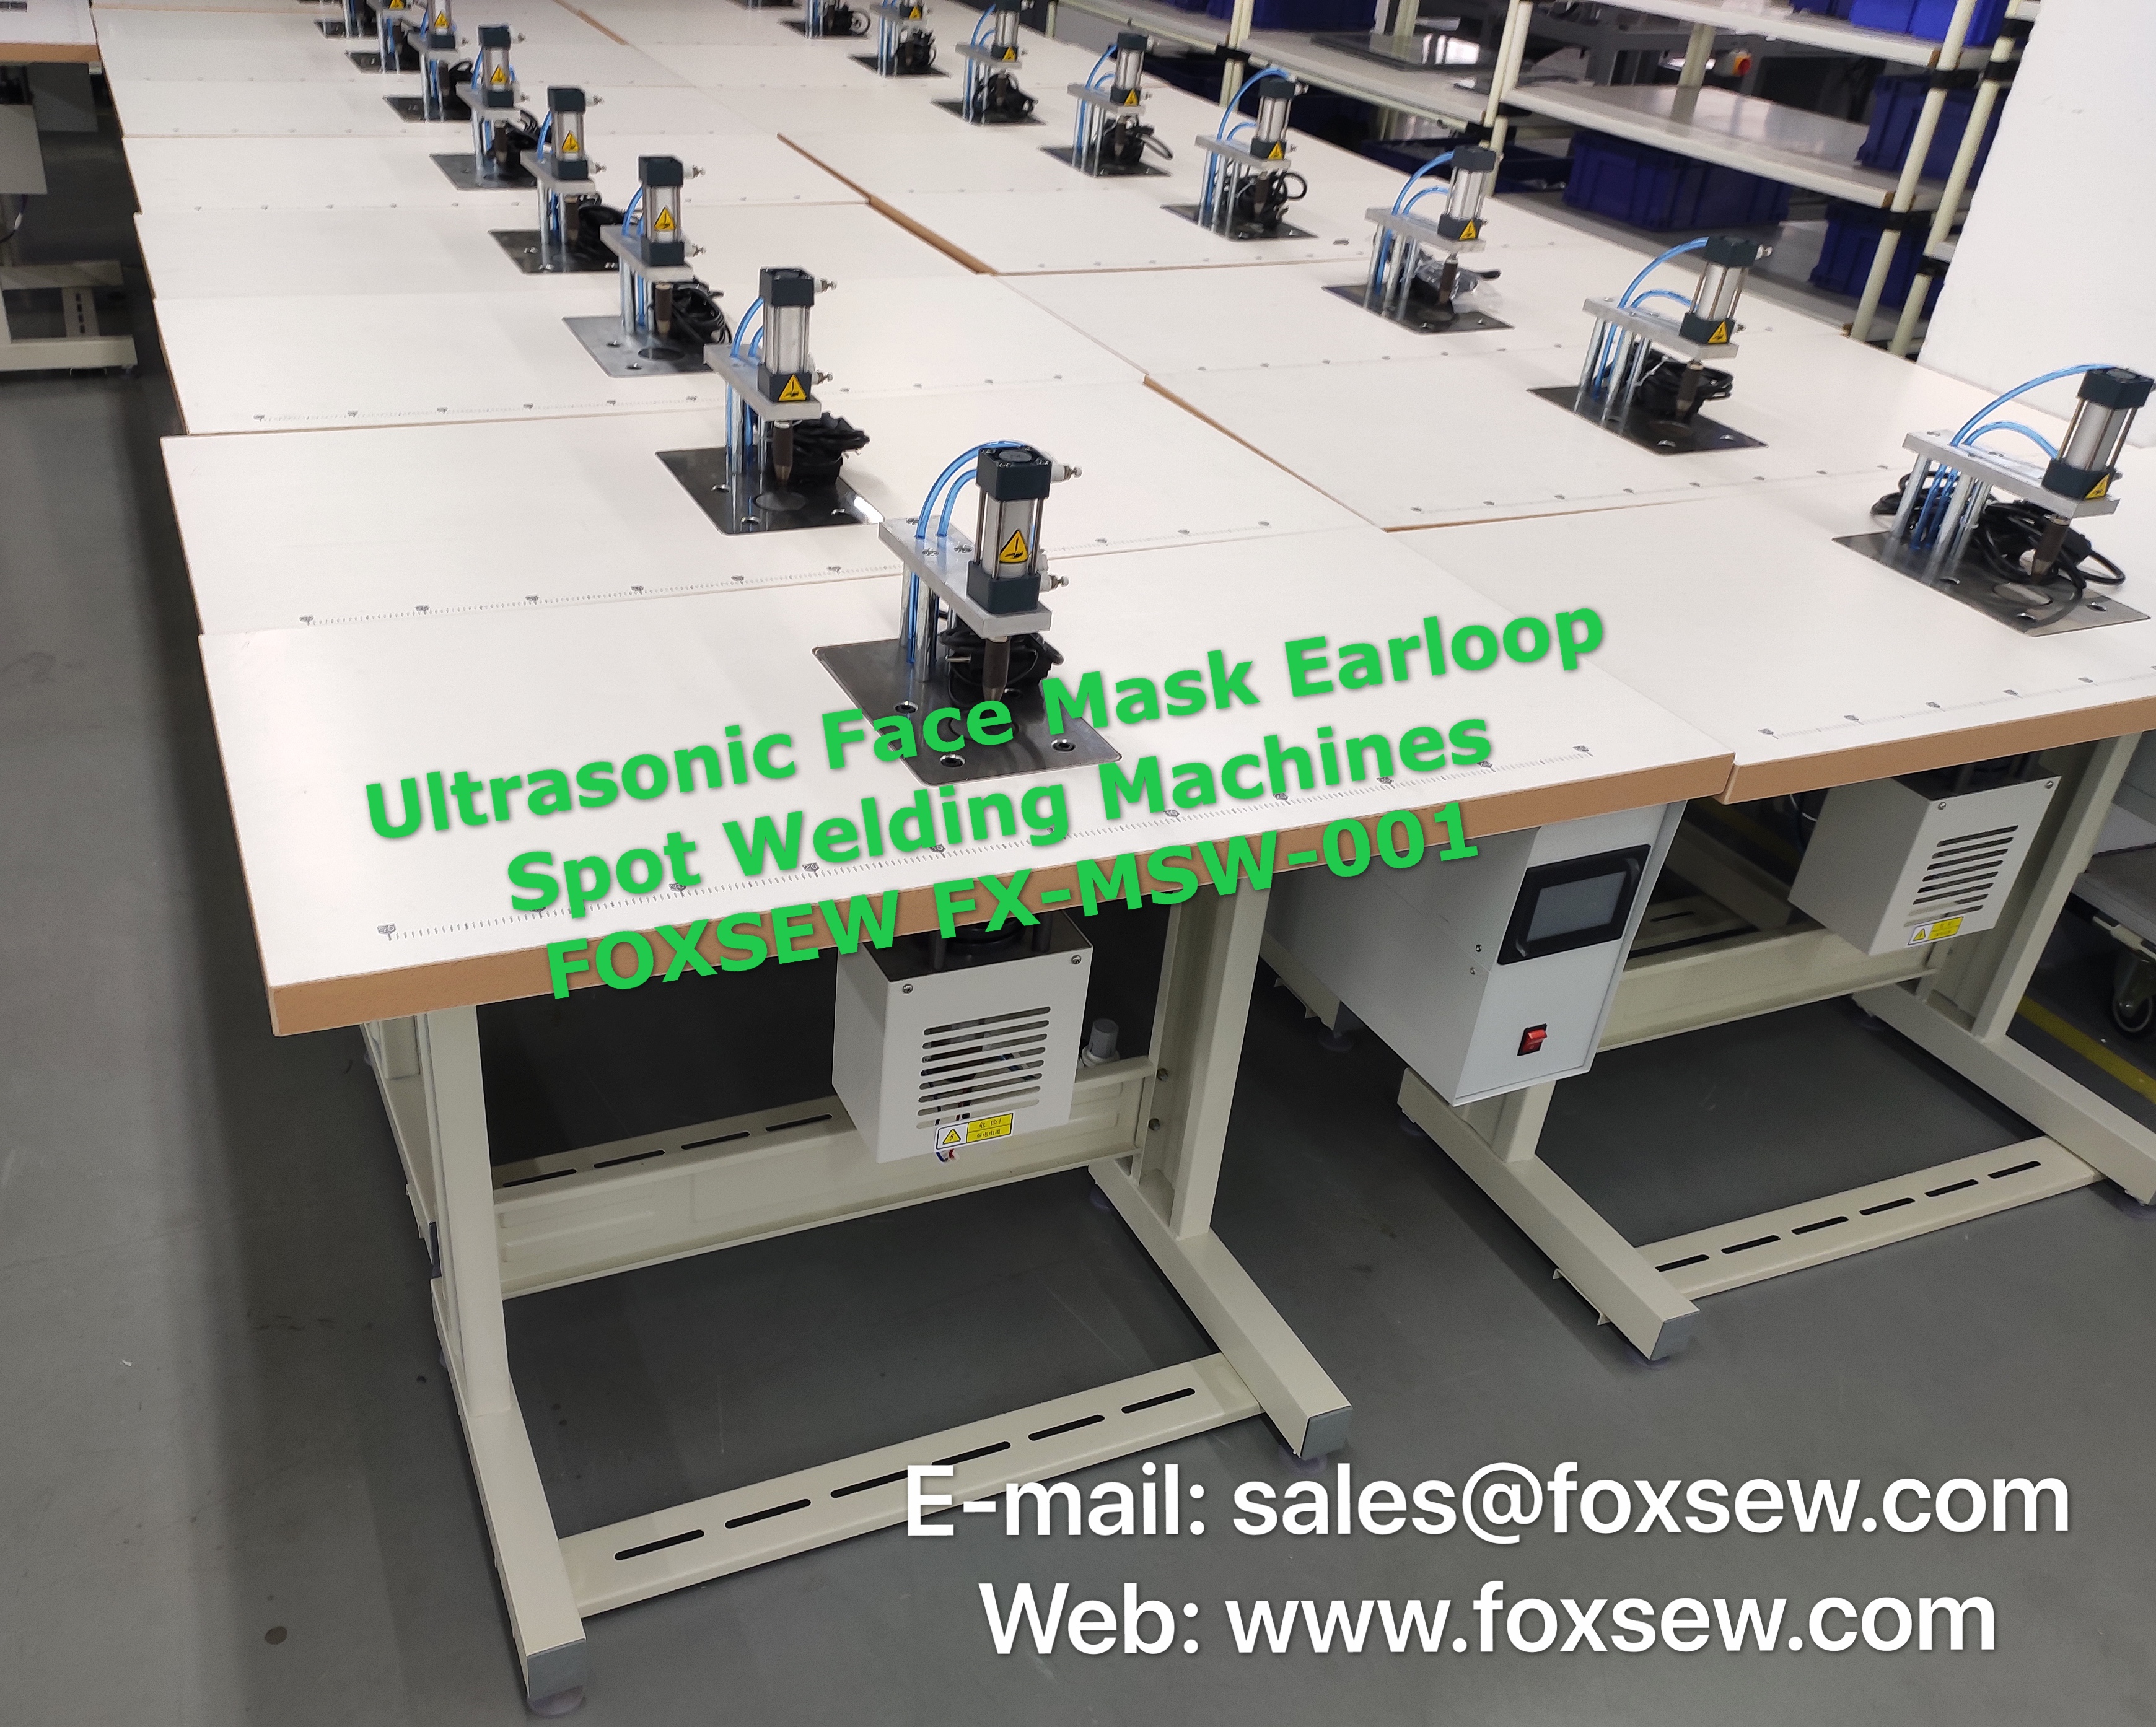 Ultrasonic Face Mask Earloop Spot Welding Machines FOXSEW FX-MSW-001 (3)